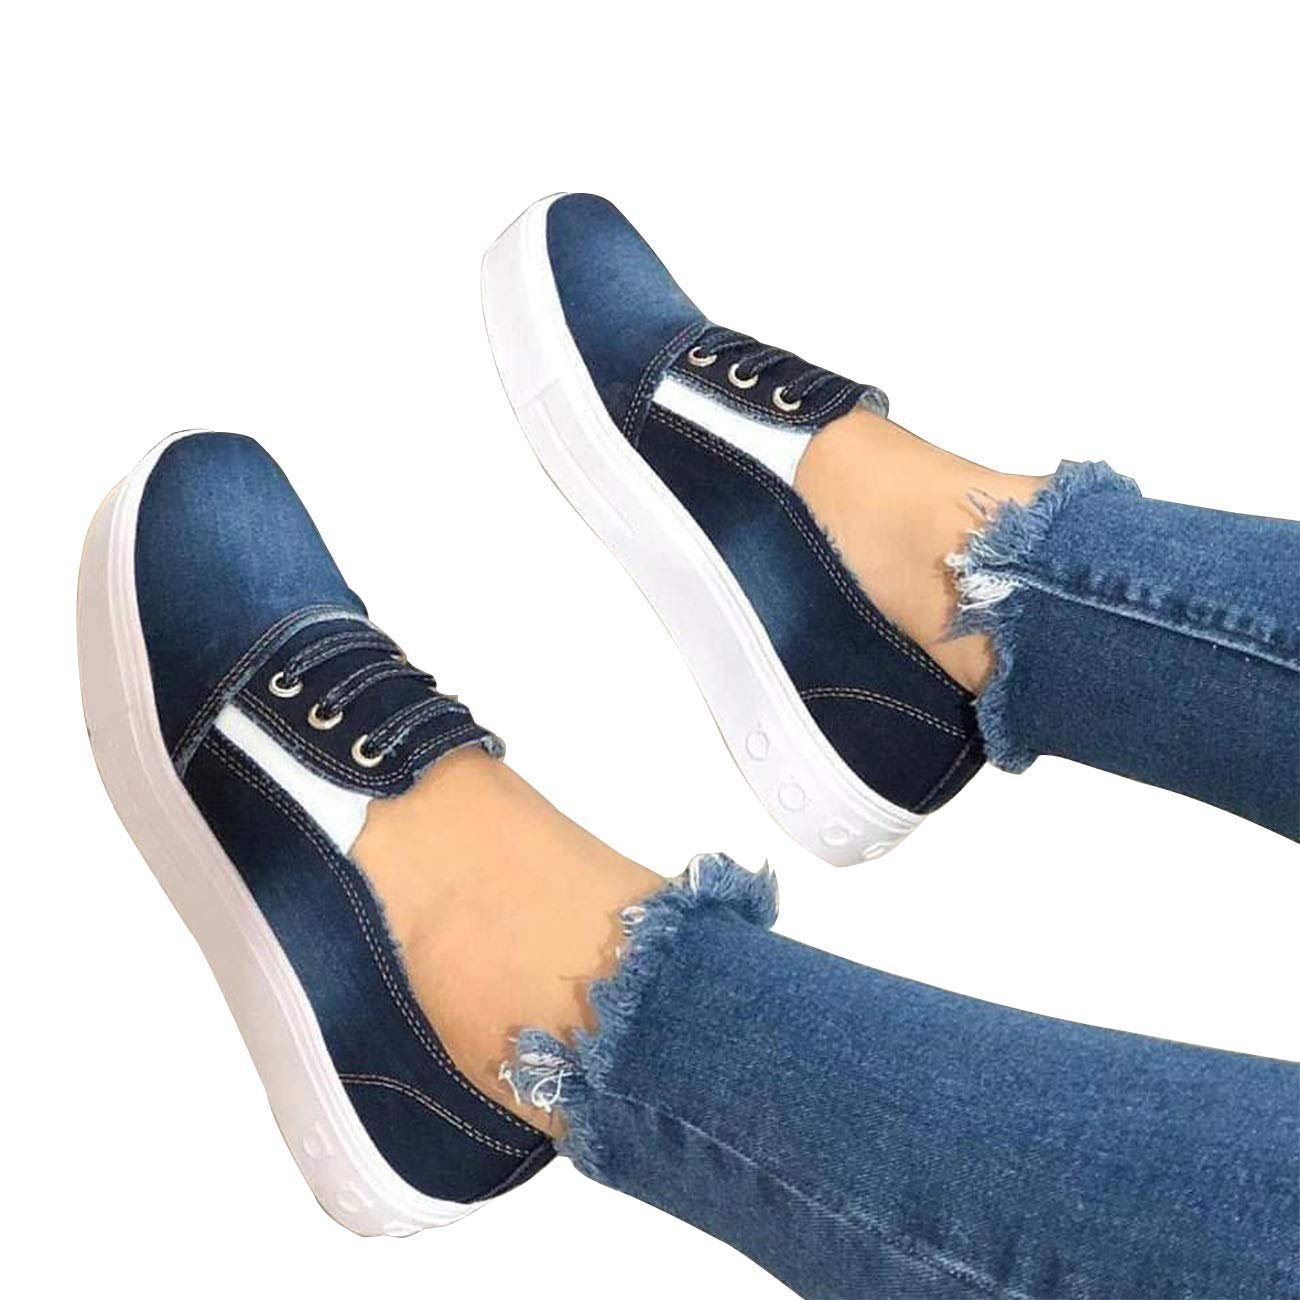 Saralove Women's Casual Sneakers Slip On Canvas Loafer Fashion Lazy Flat Shoes (4 UK,Blue)